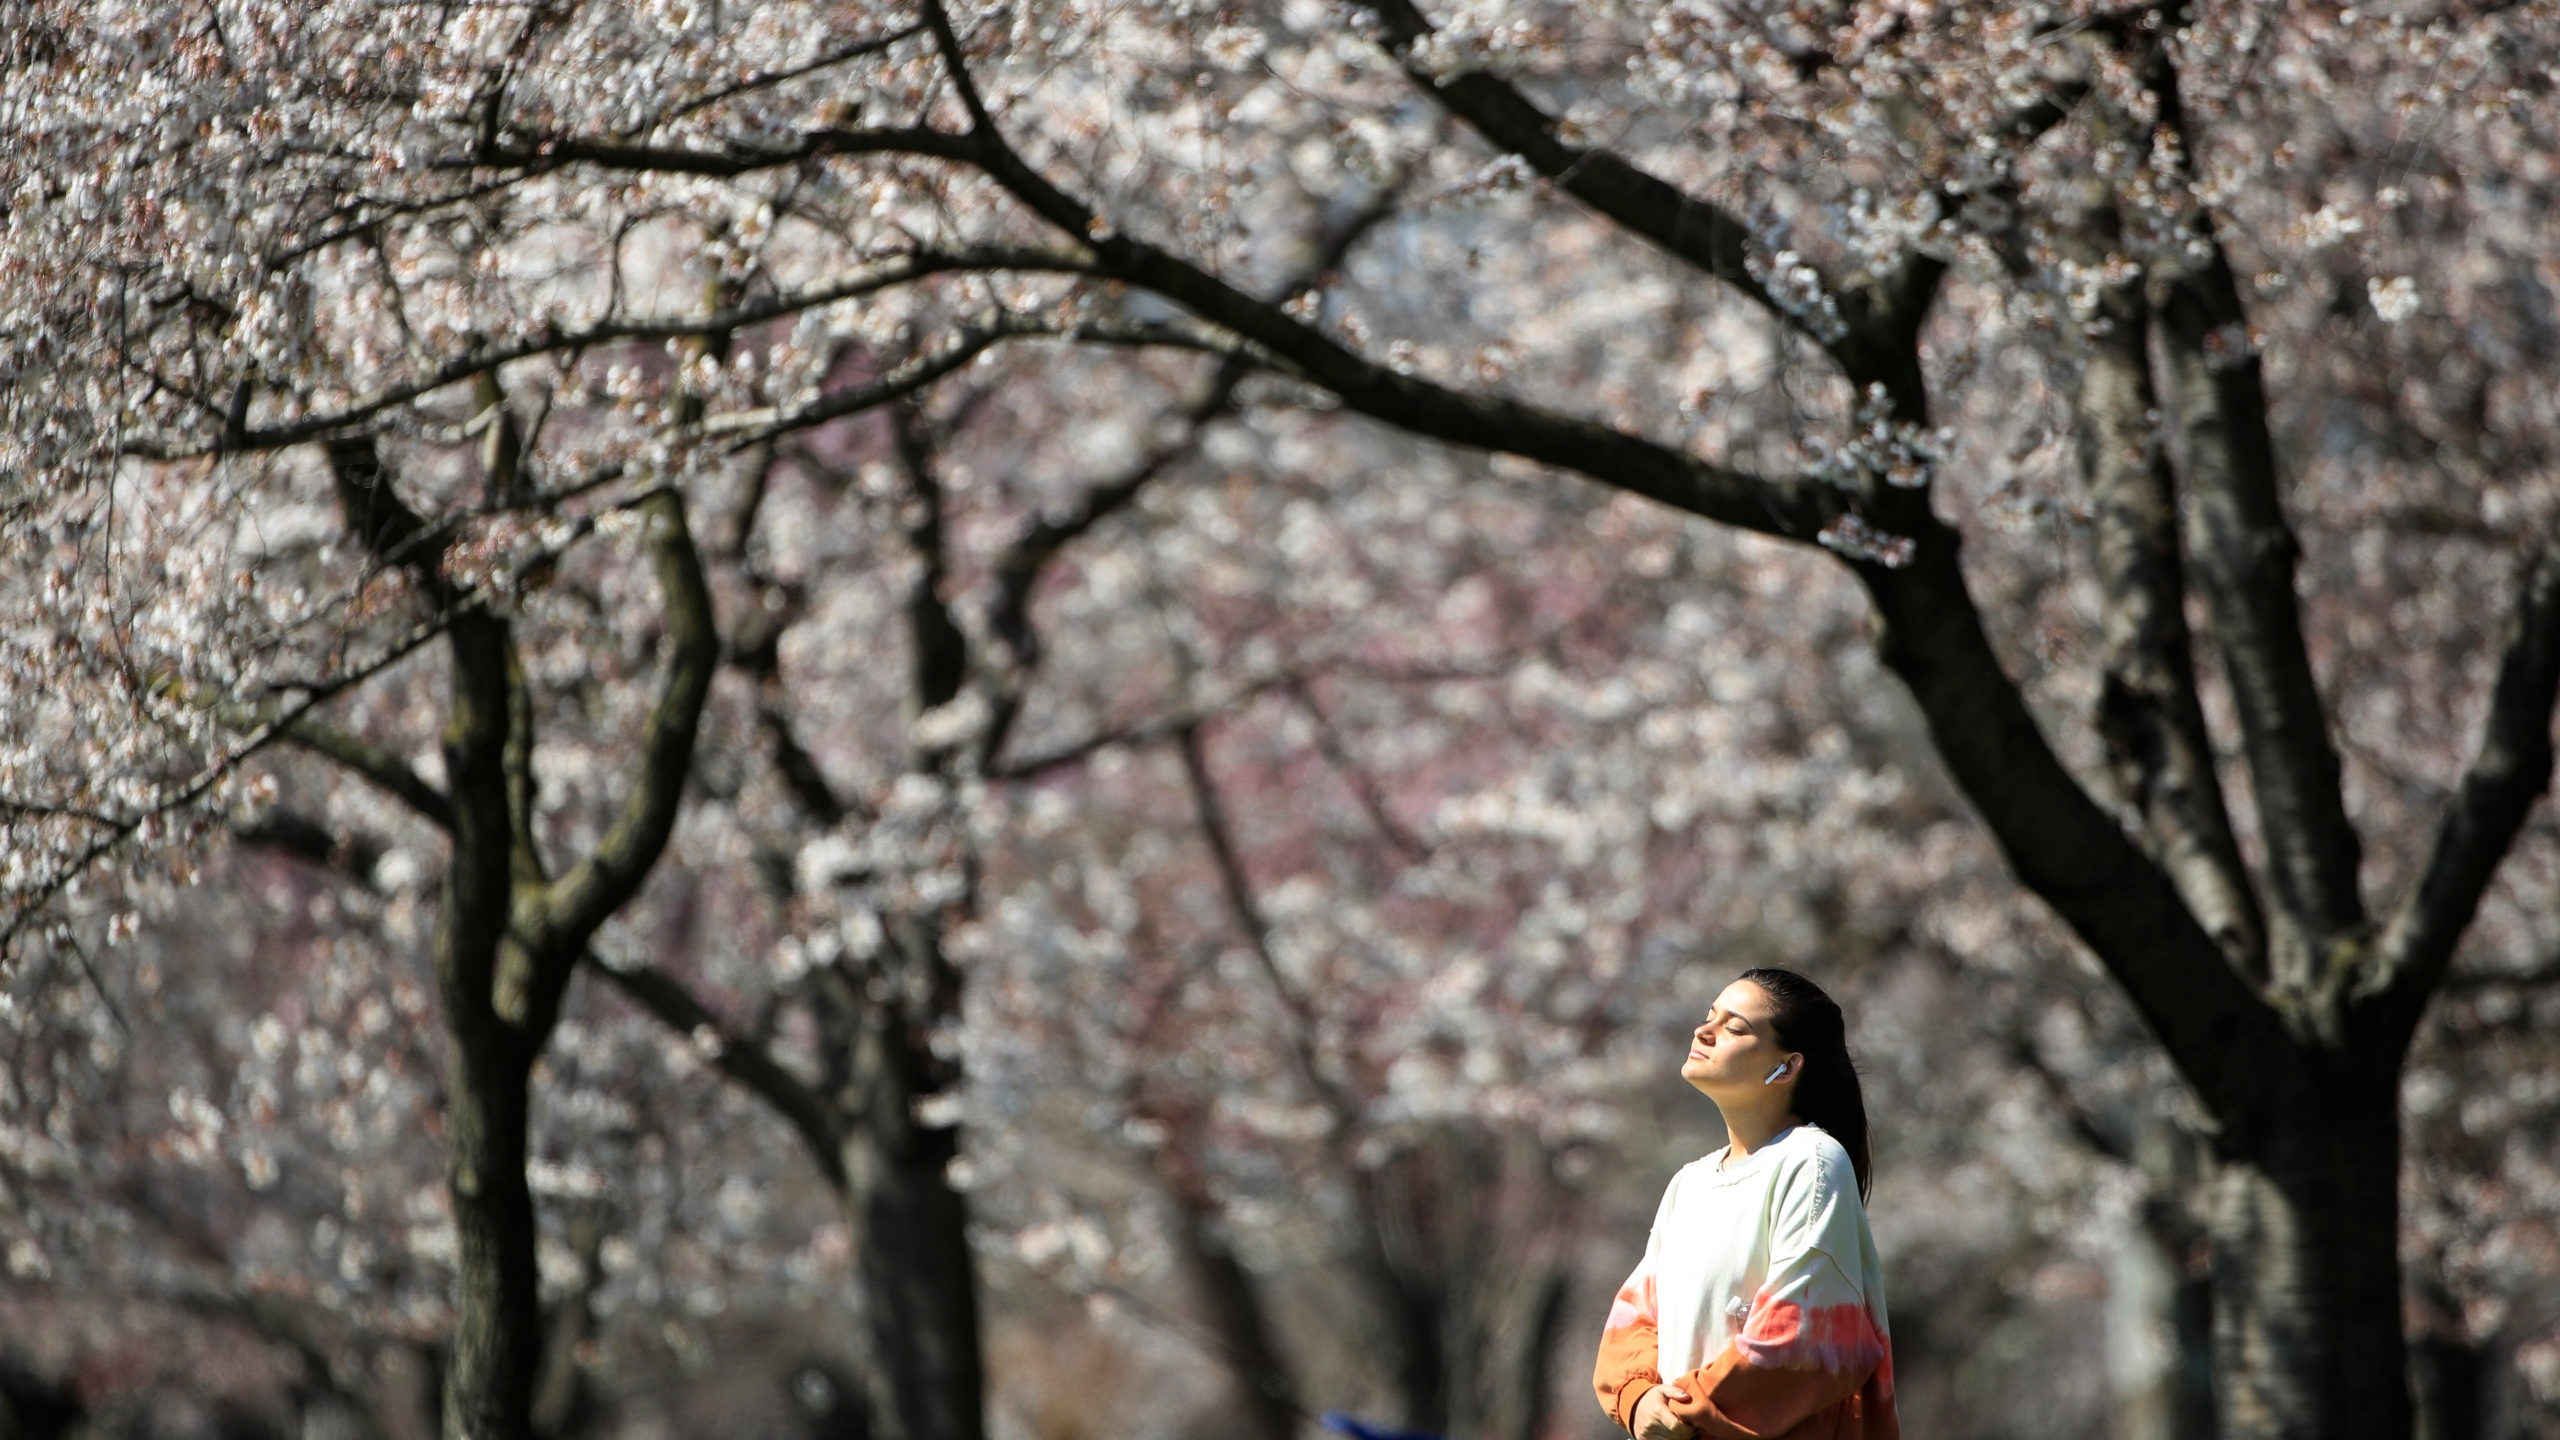 A person takes in the afternoon sun amid the cherry blossoms along Kelly Drive in Philadelphia. For millions of seasonal allergy sufferers, the annual onset of watery eyes and scratchy throats is bumping up against the global spread of a new virus that produces its own constellation of respiratory symptoms. That's causing angst for people who suffer from hay fever and are now asking themselves whether their symptoms are related to their allergies or the new coronavirus. (AP Photo/Matt Rourke)